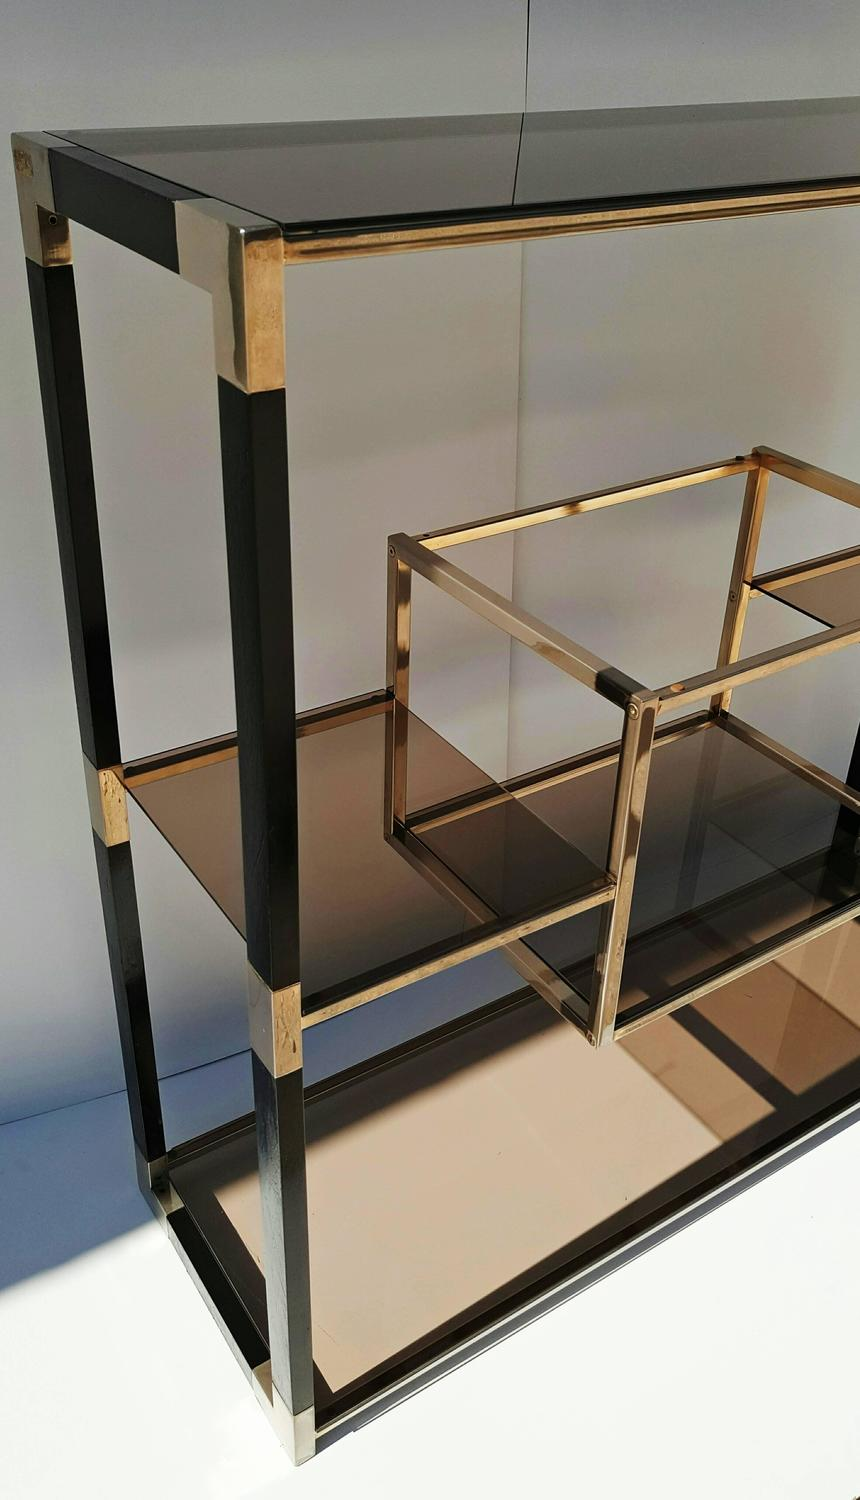 etagere brass and glass room divider by tratys from italy. Black Bedroom Furniture Sets. Home Design Ideas